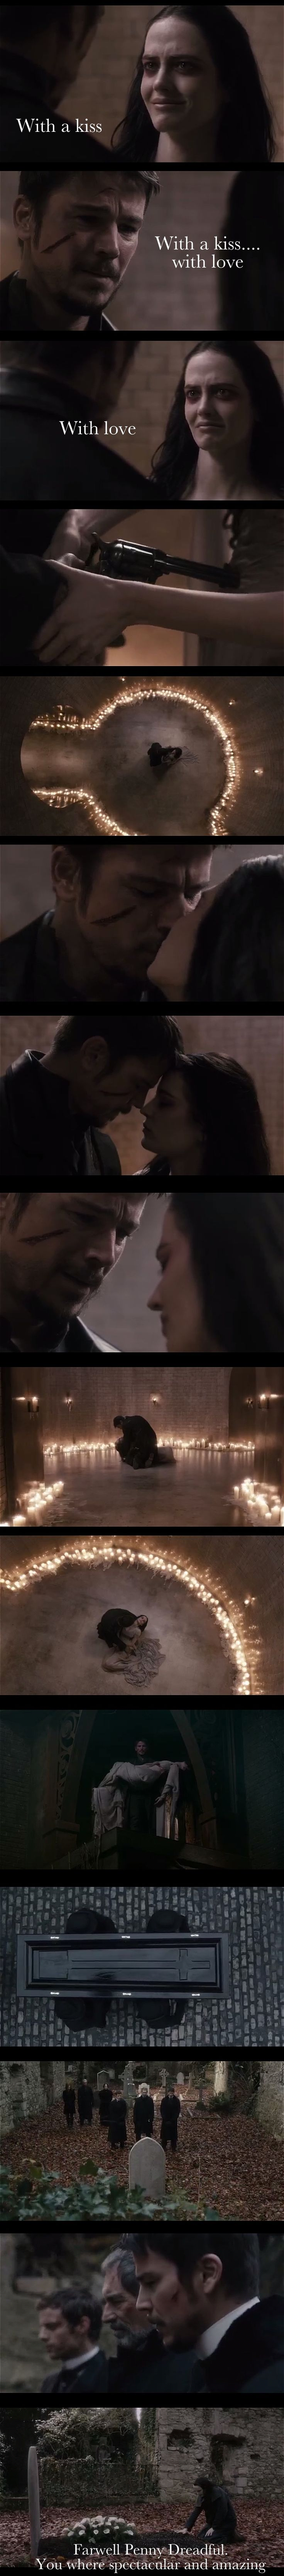 It's with a kiss with love I say a very tearful goodby to this uniq and beautiful show. Thank you Penny Dreadful for 3 spectacular and amazing seasons.